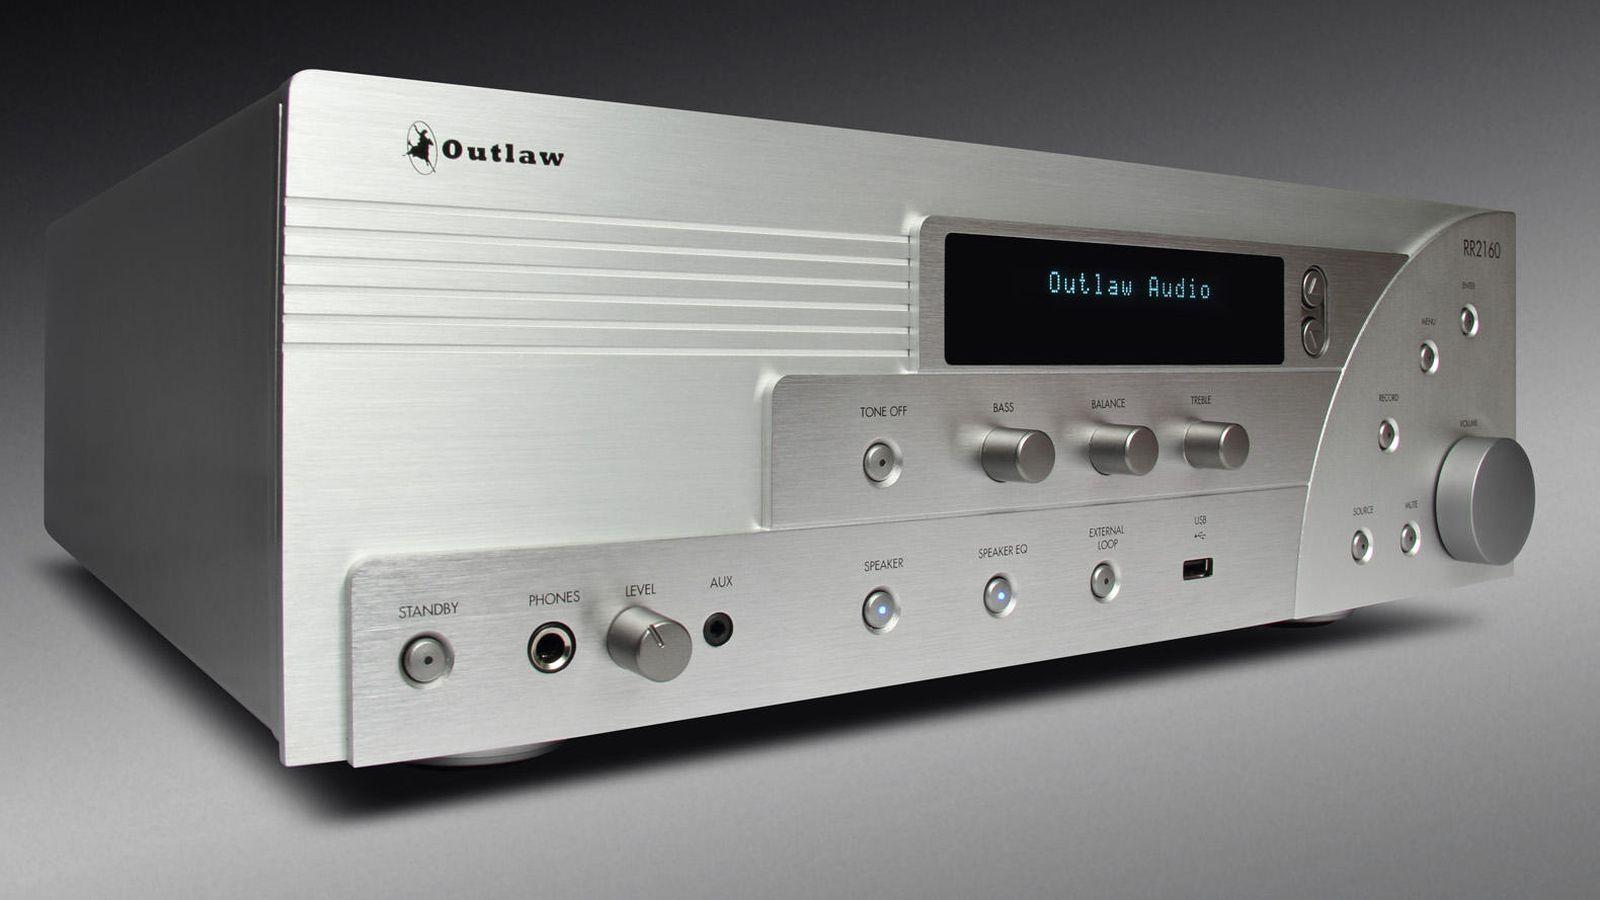 Outlaw Audio RR 2160 stereo receiver